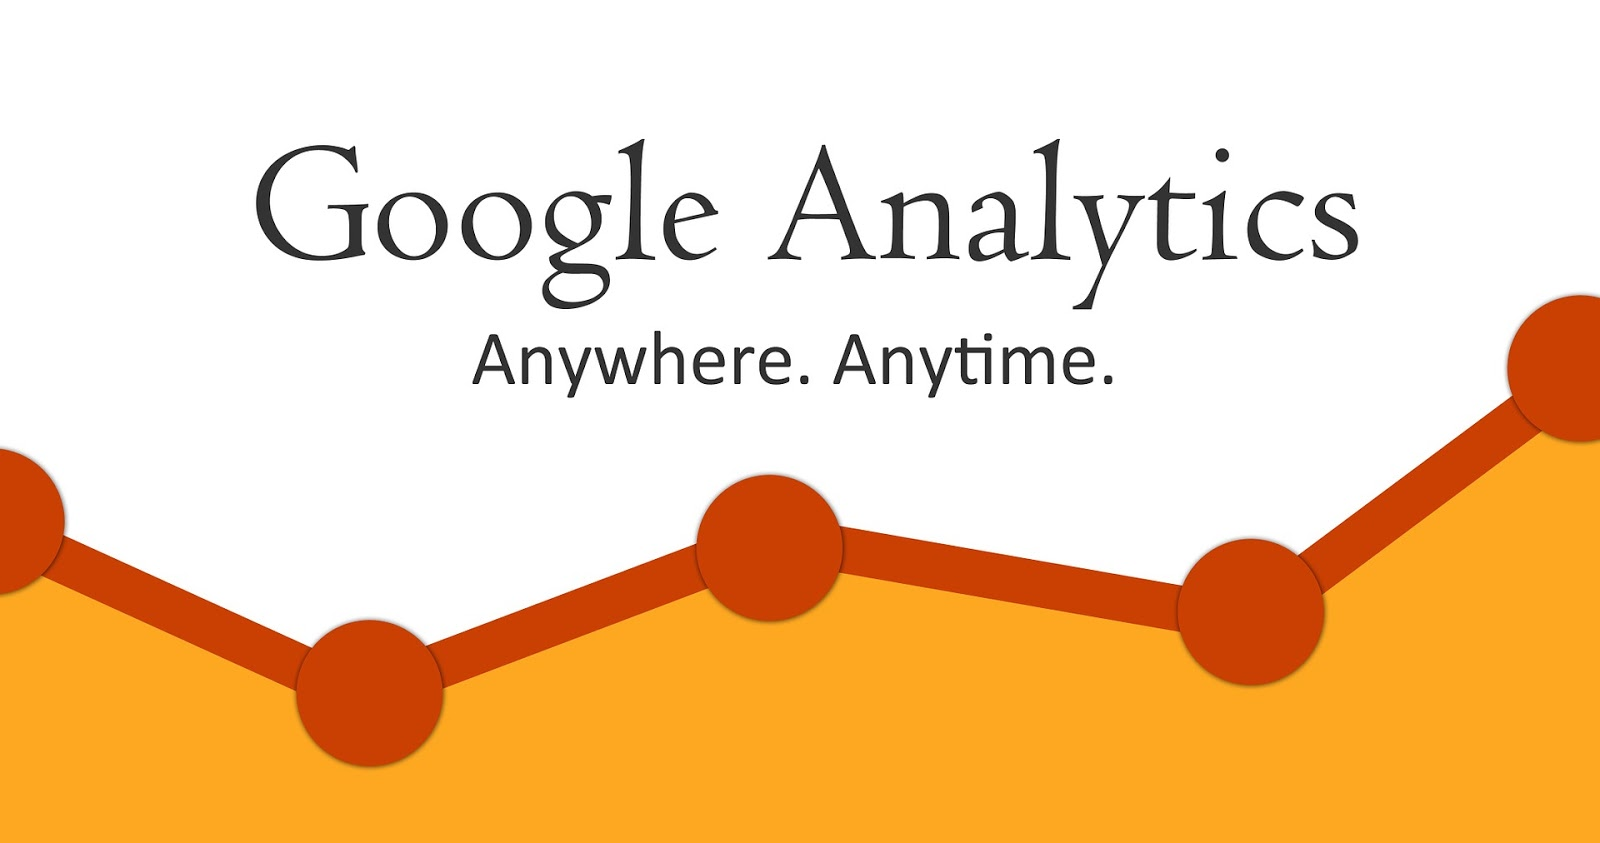 Google-Analytics-Search-Engine-Marketing-(SEM)-Services-PPC-Services-Digital-Marketing-Company-by-Omkara-Marketing-Services